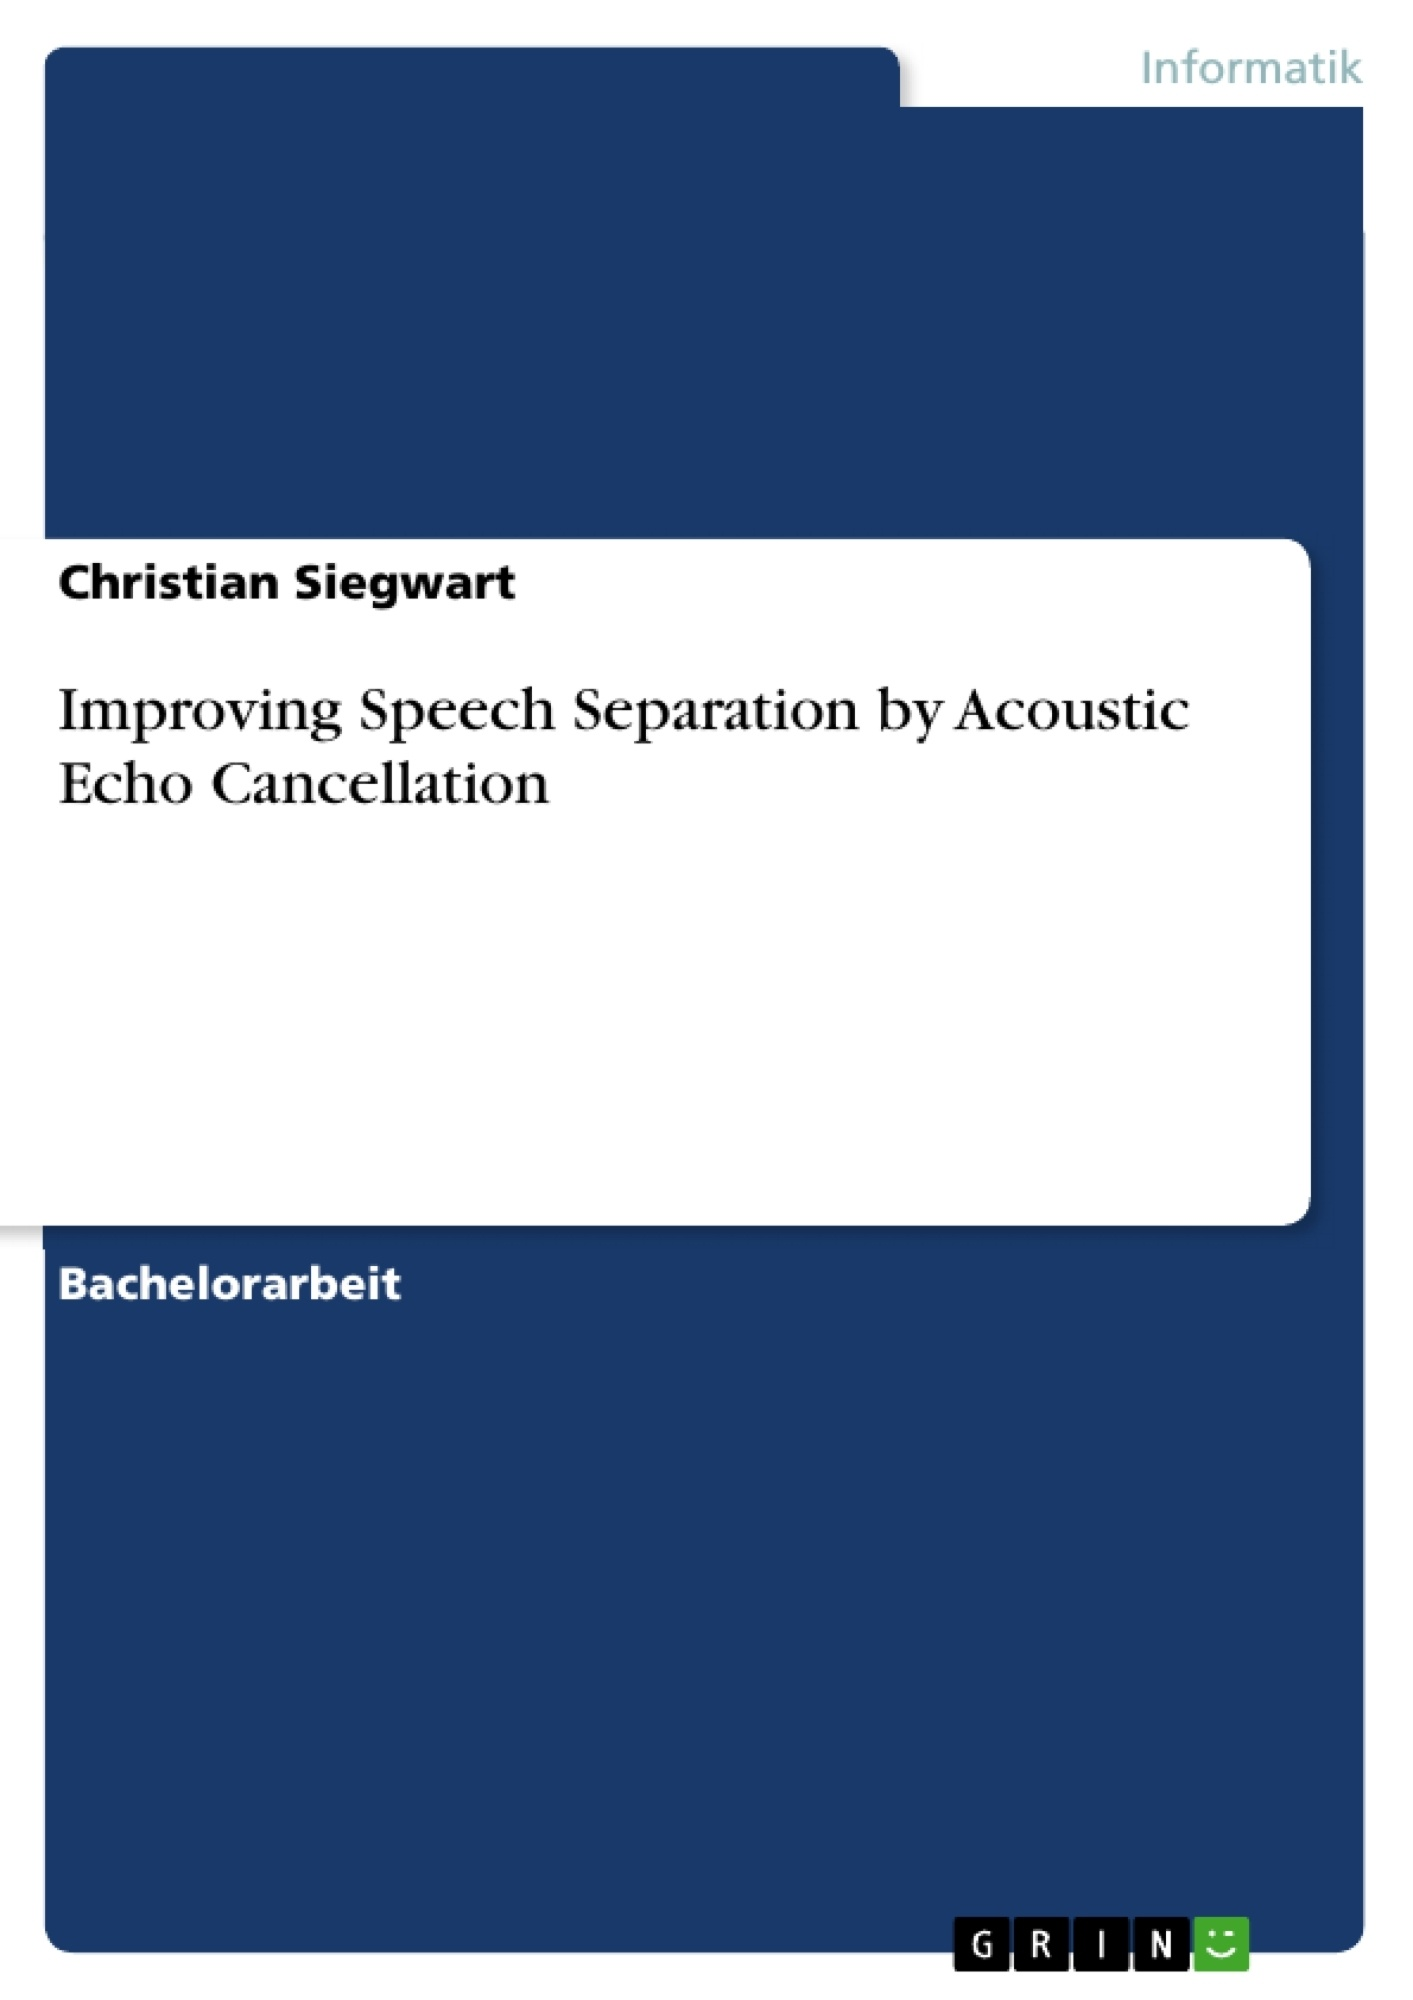 Titel: Improving Speech Separation by Acoustic Echo Cancellation